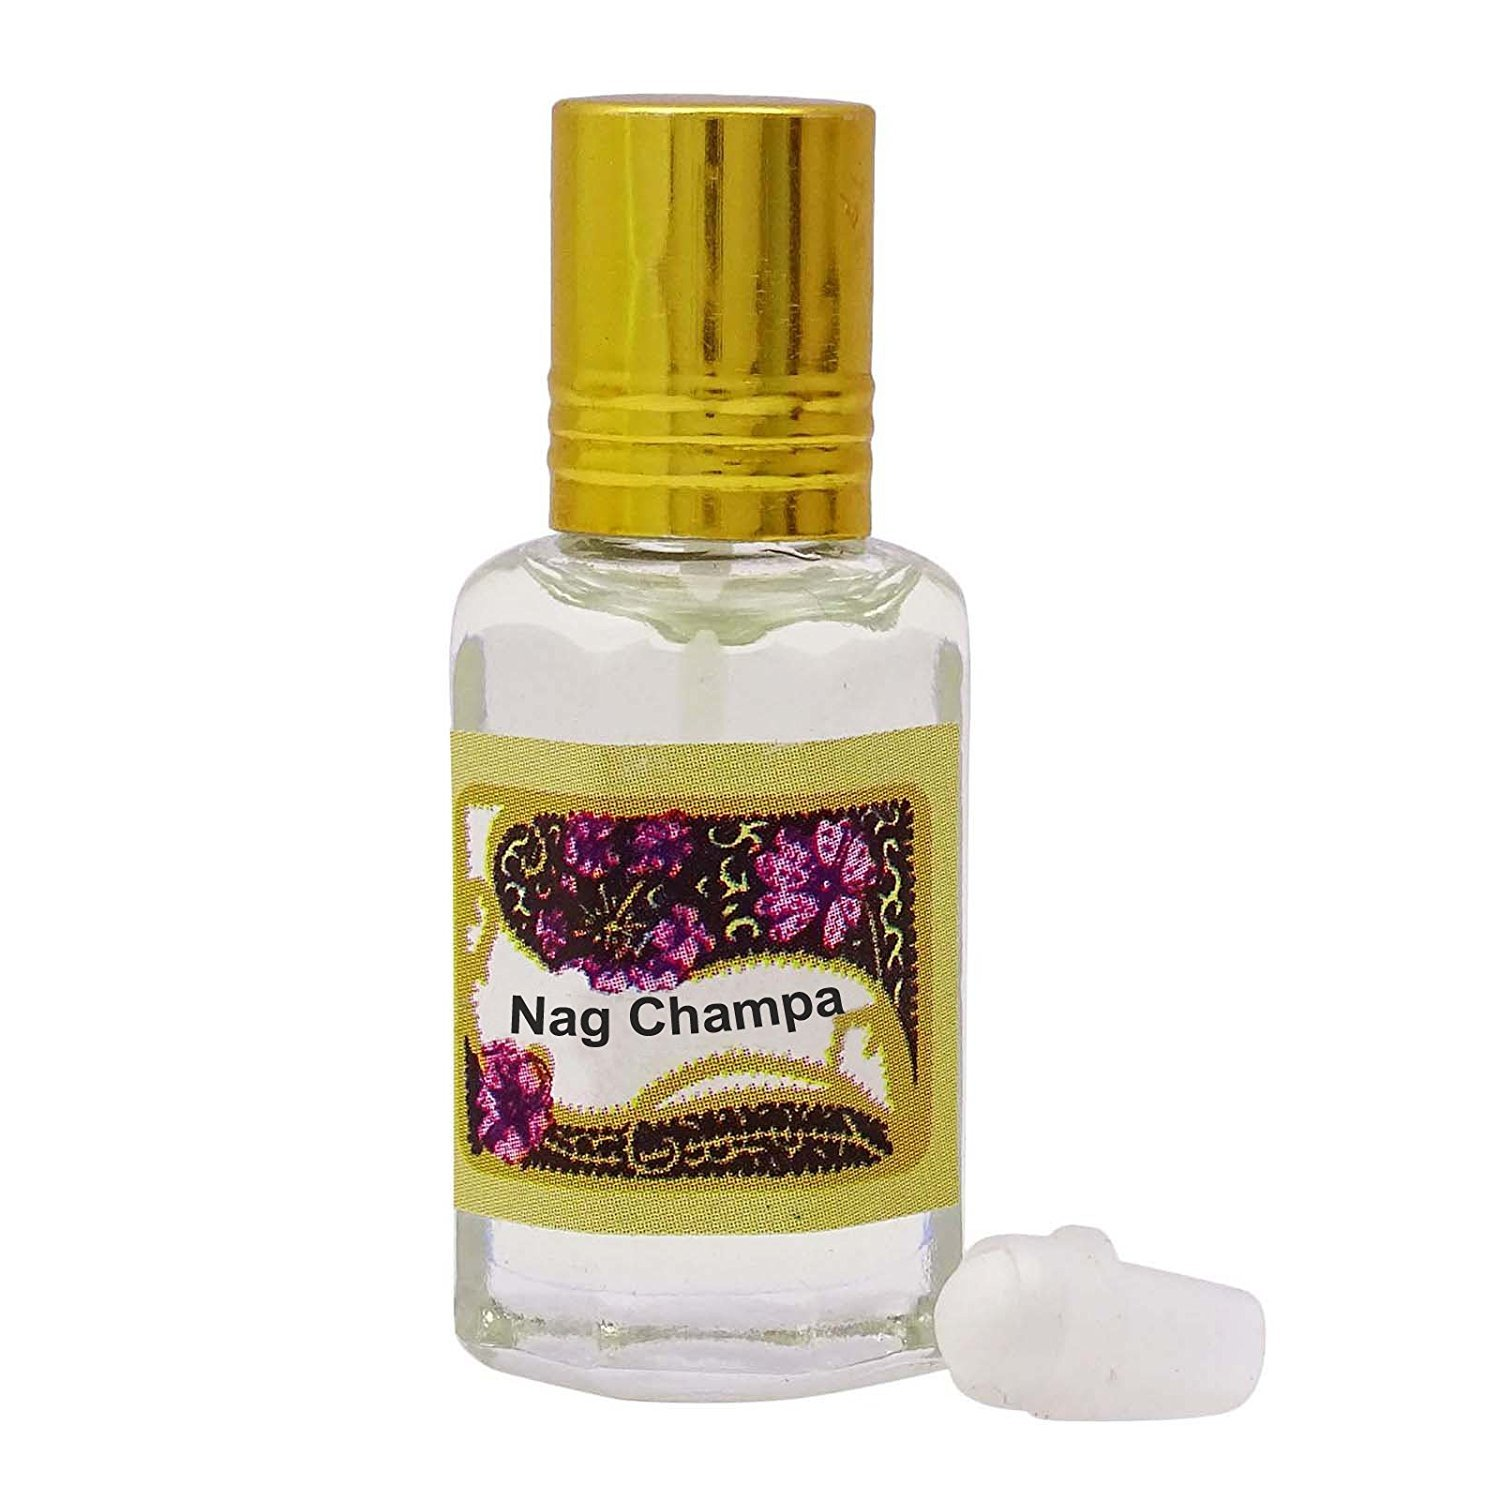 Nag Champa Fragrance Oil 100% Pure and Natural Perfume Oil - 10ml